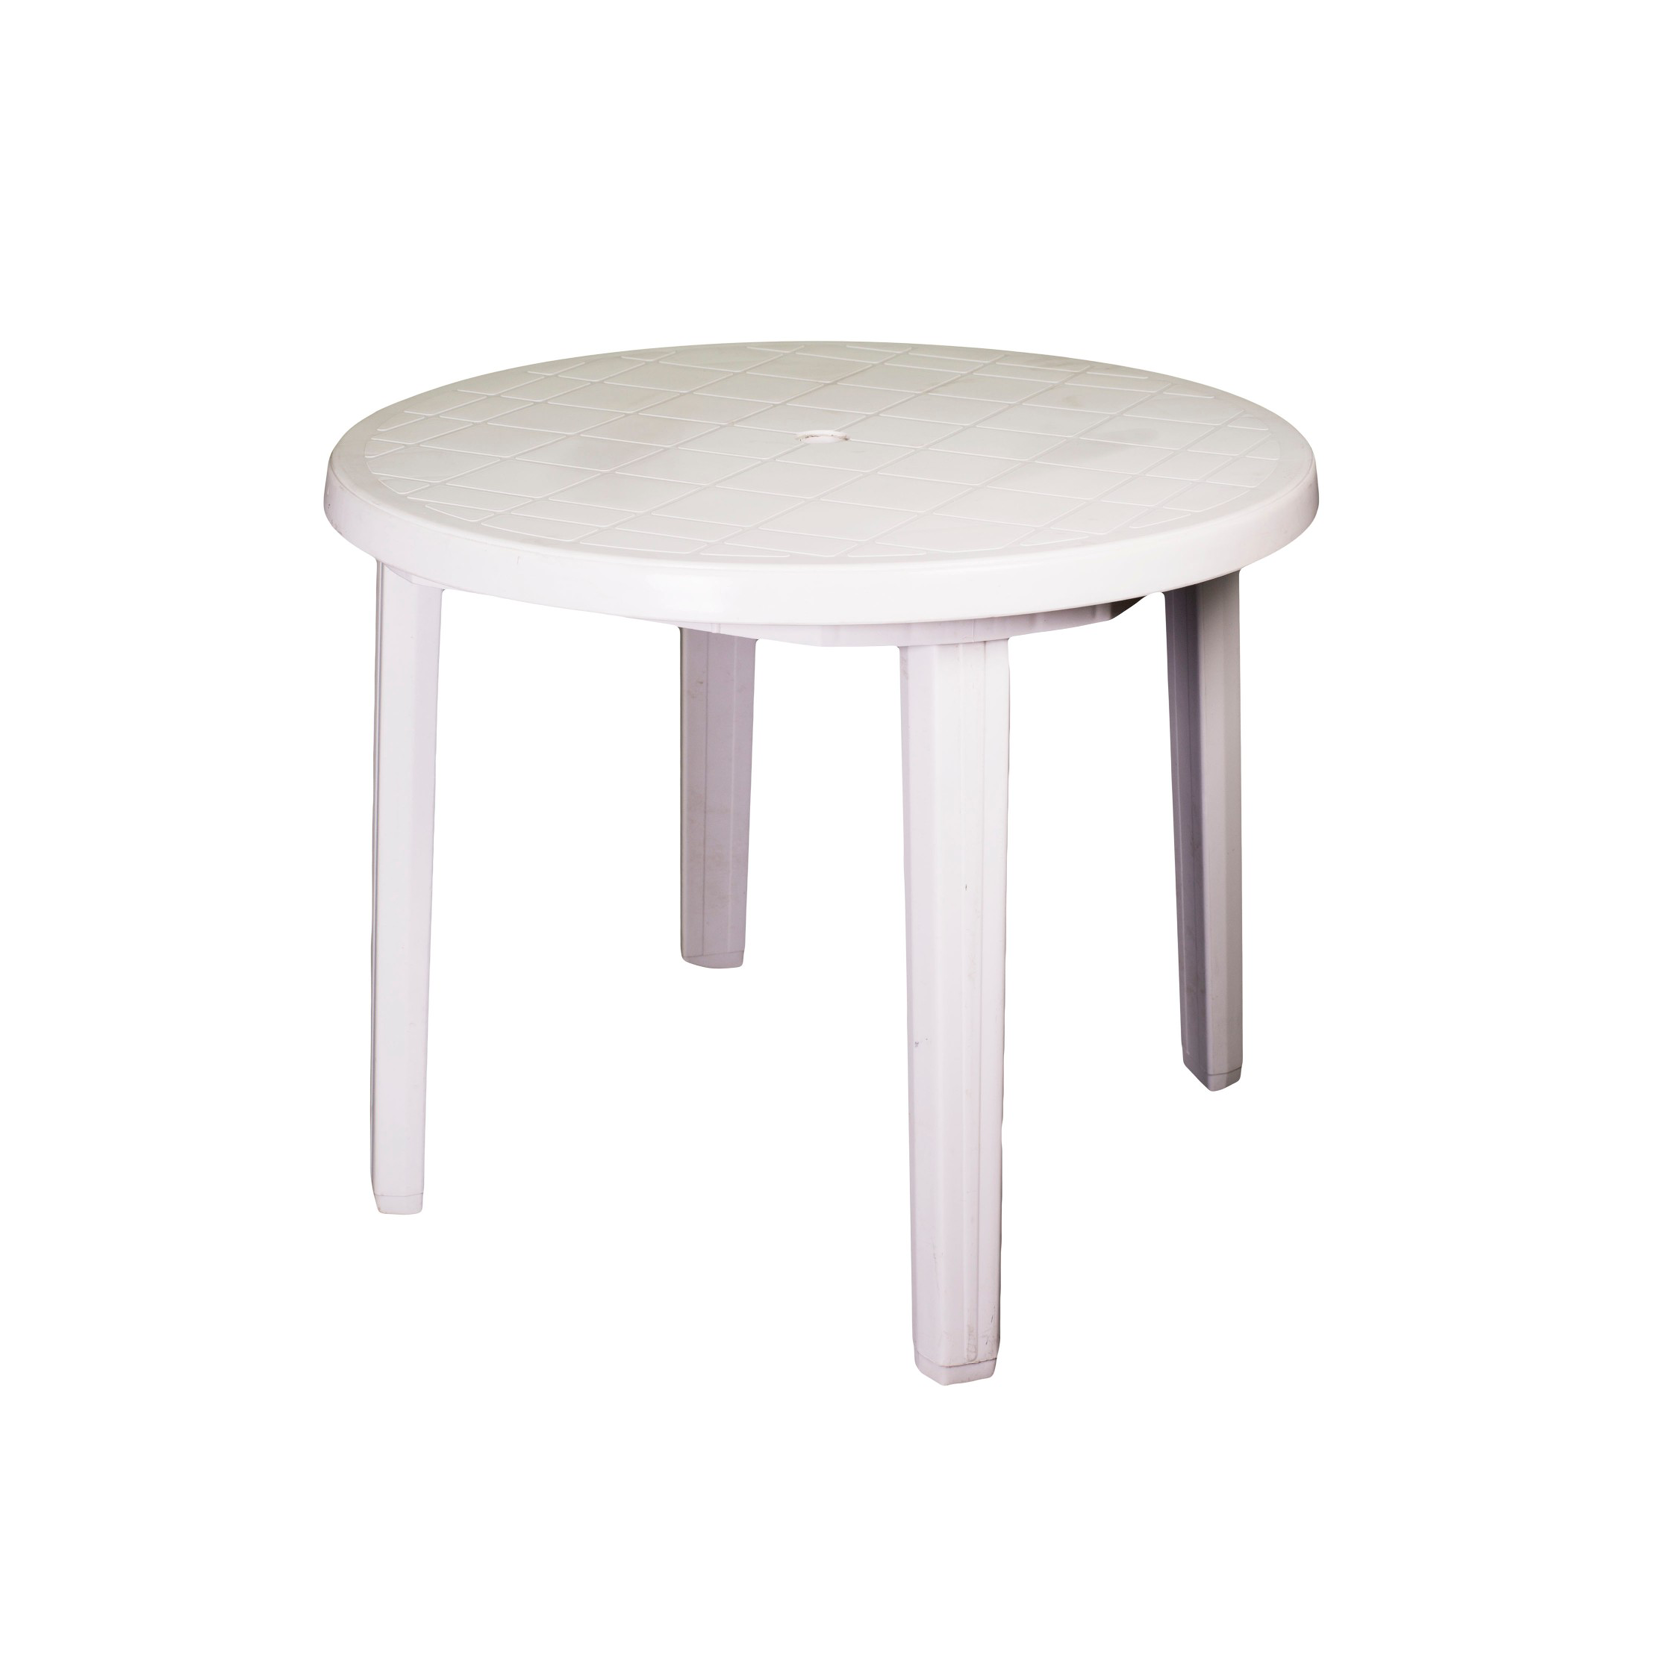 Peachy Plastic Patio Table White Onthecornerstone Fun Painted Chair Ideas Images Onthecornerstoneorg